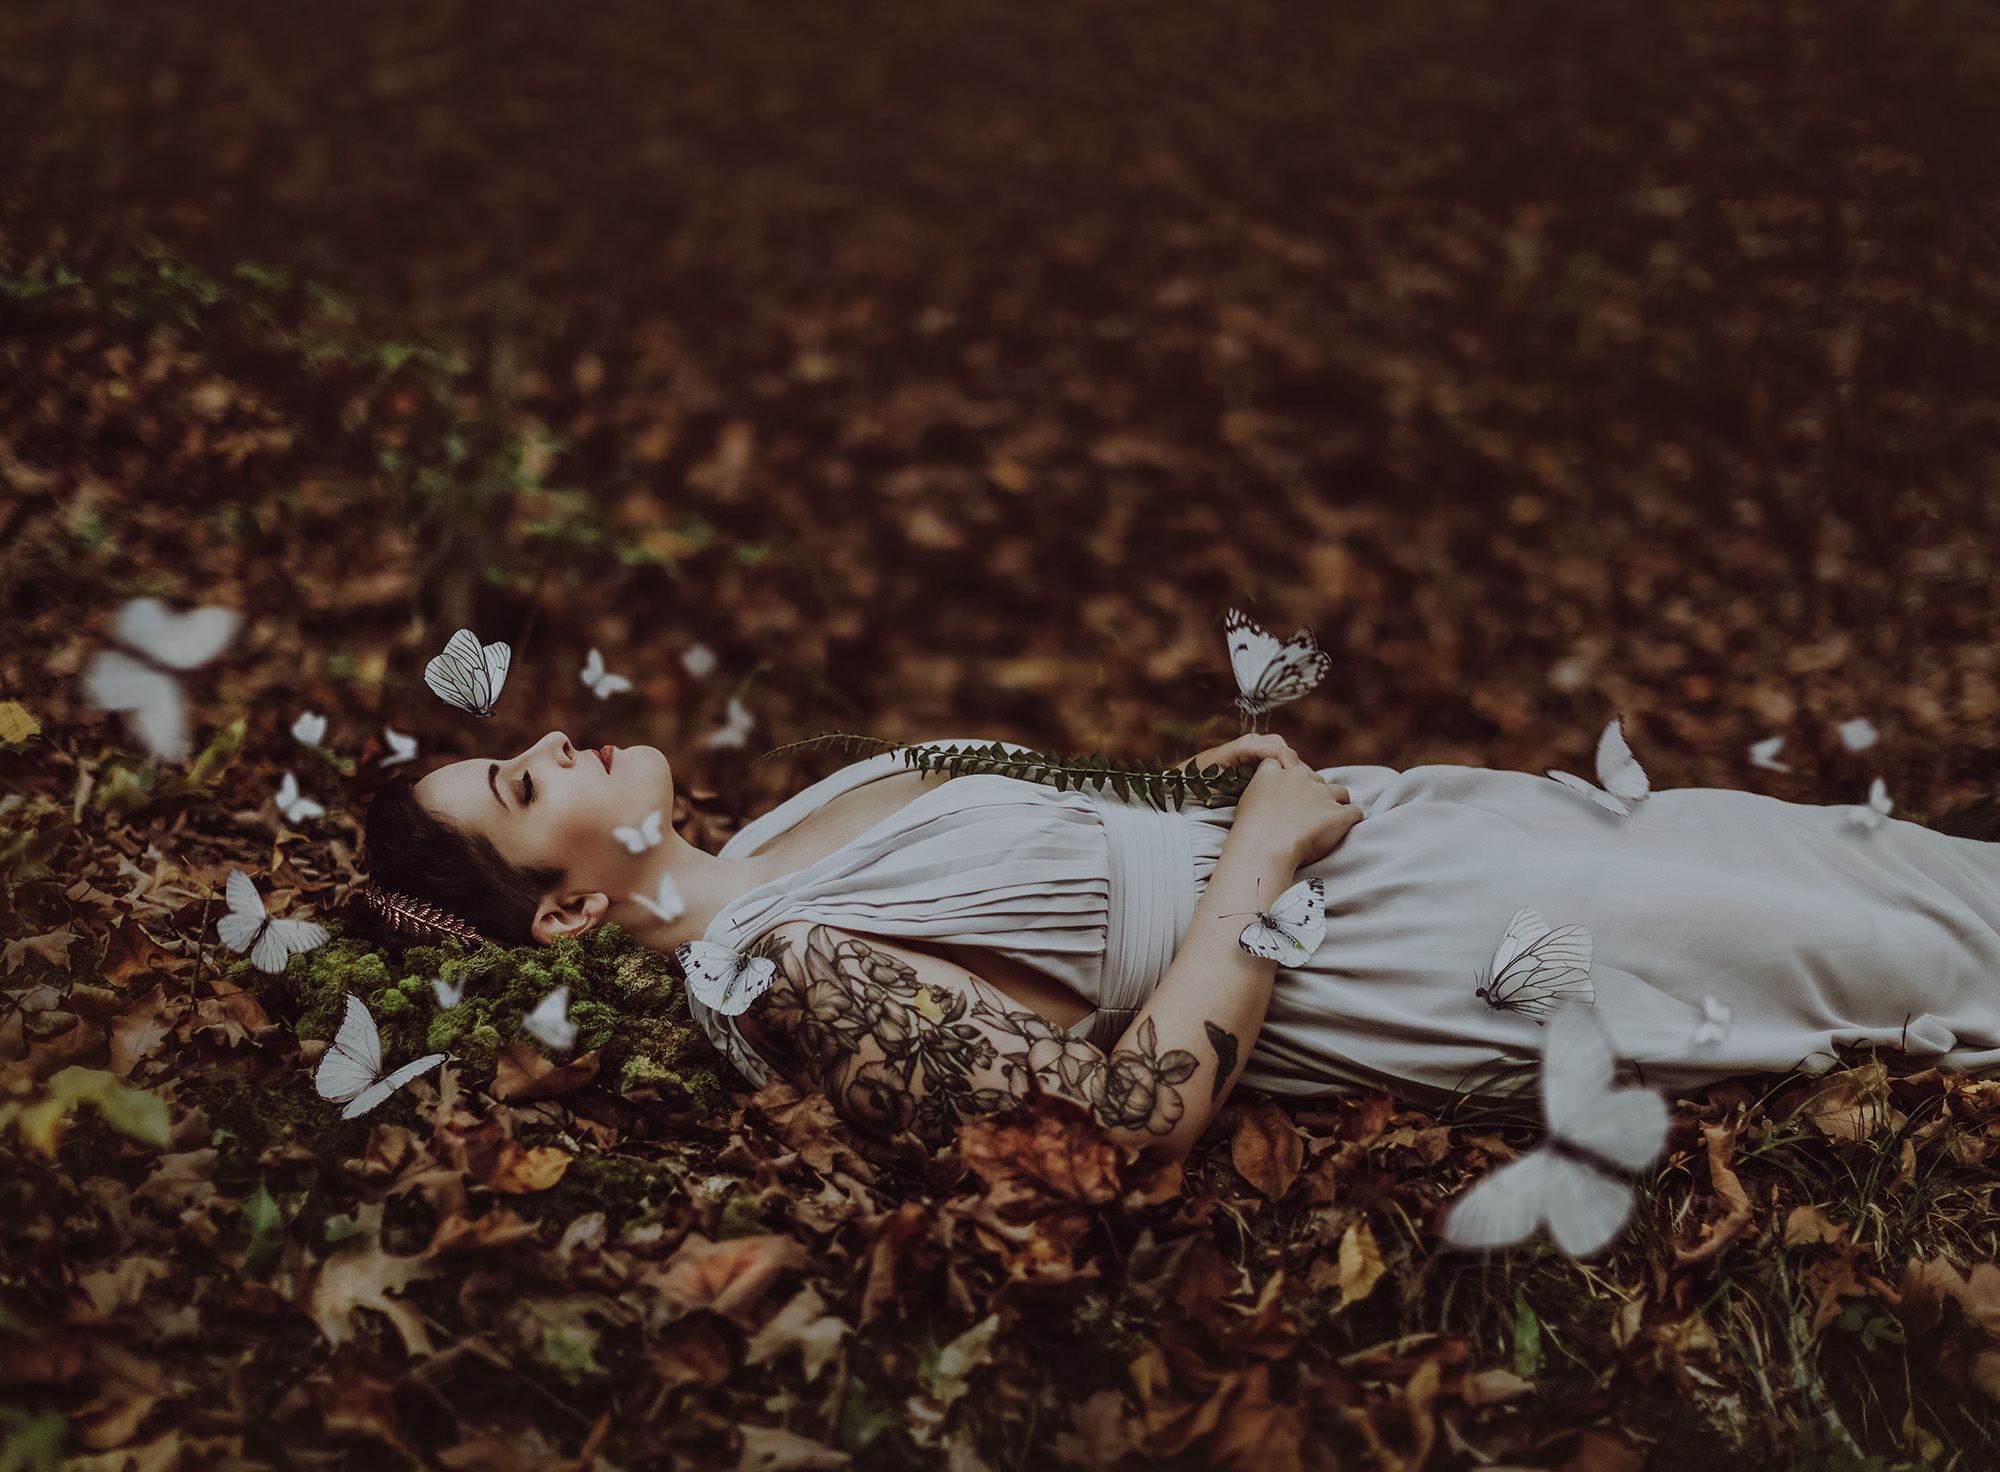 Woman in gray dress asleep in forest surrounded by white butterflies